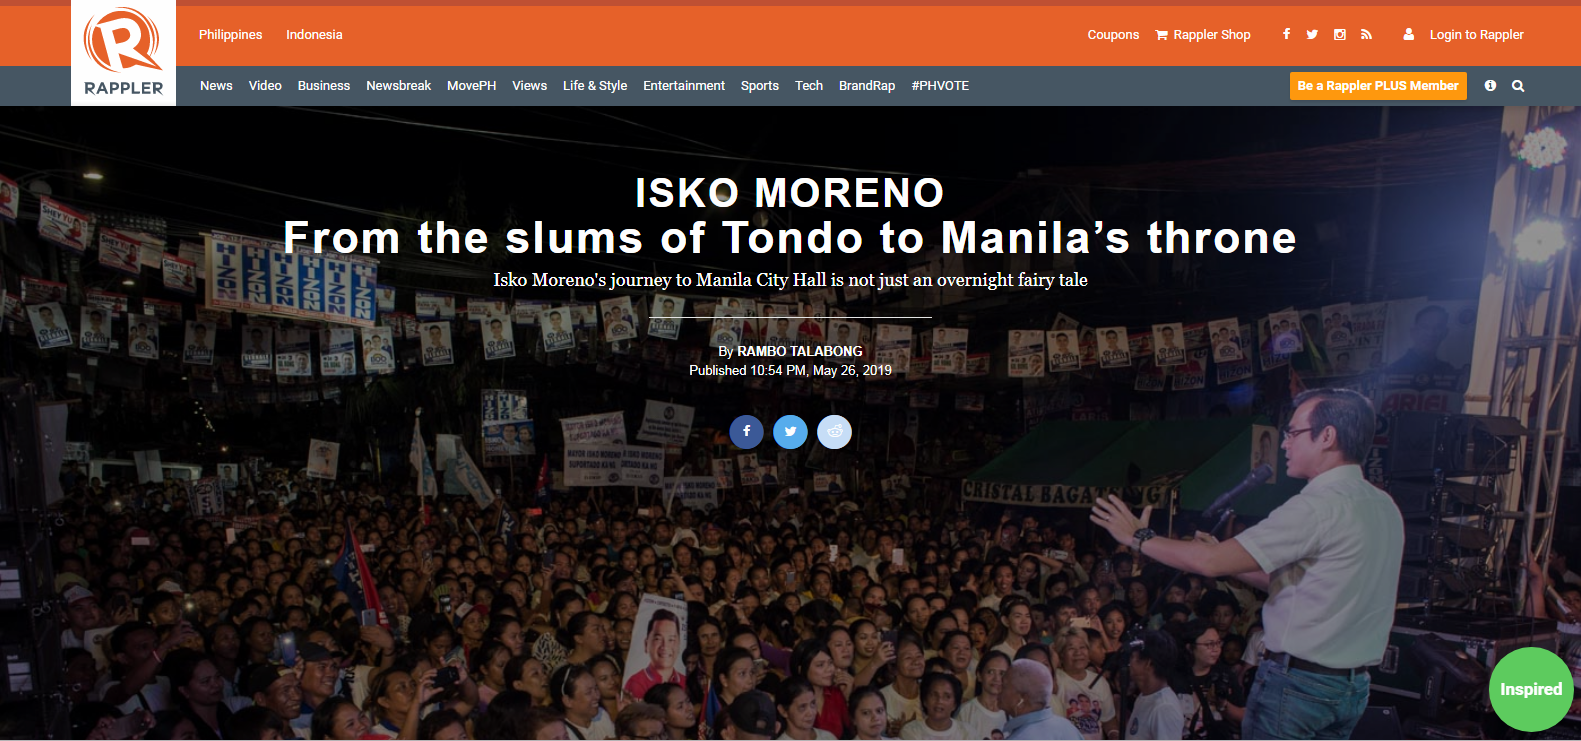 Isko Moreno: From the slums of Tondo to Manila's throne